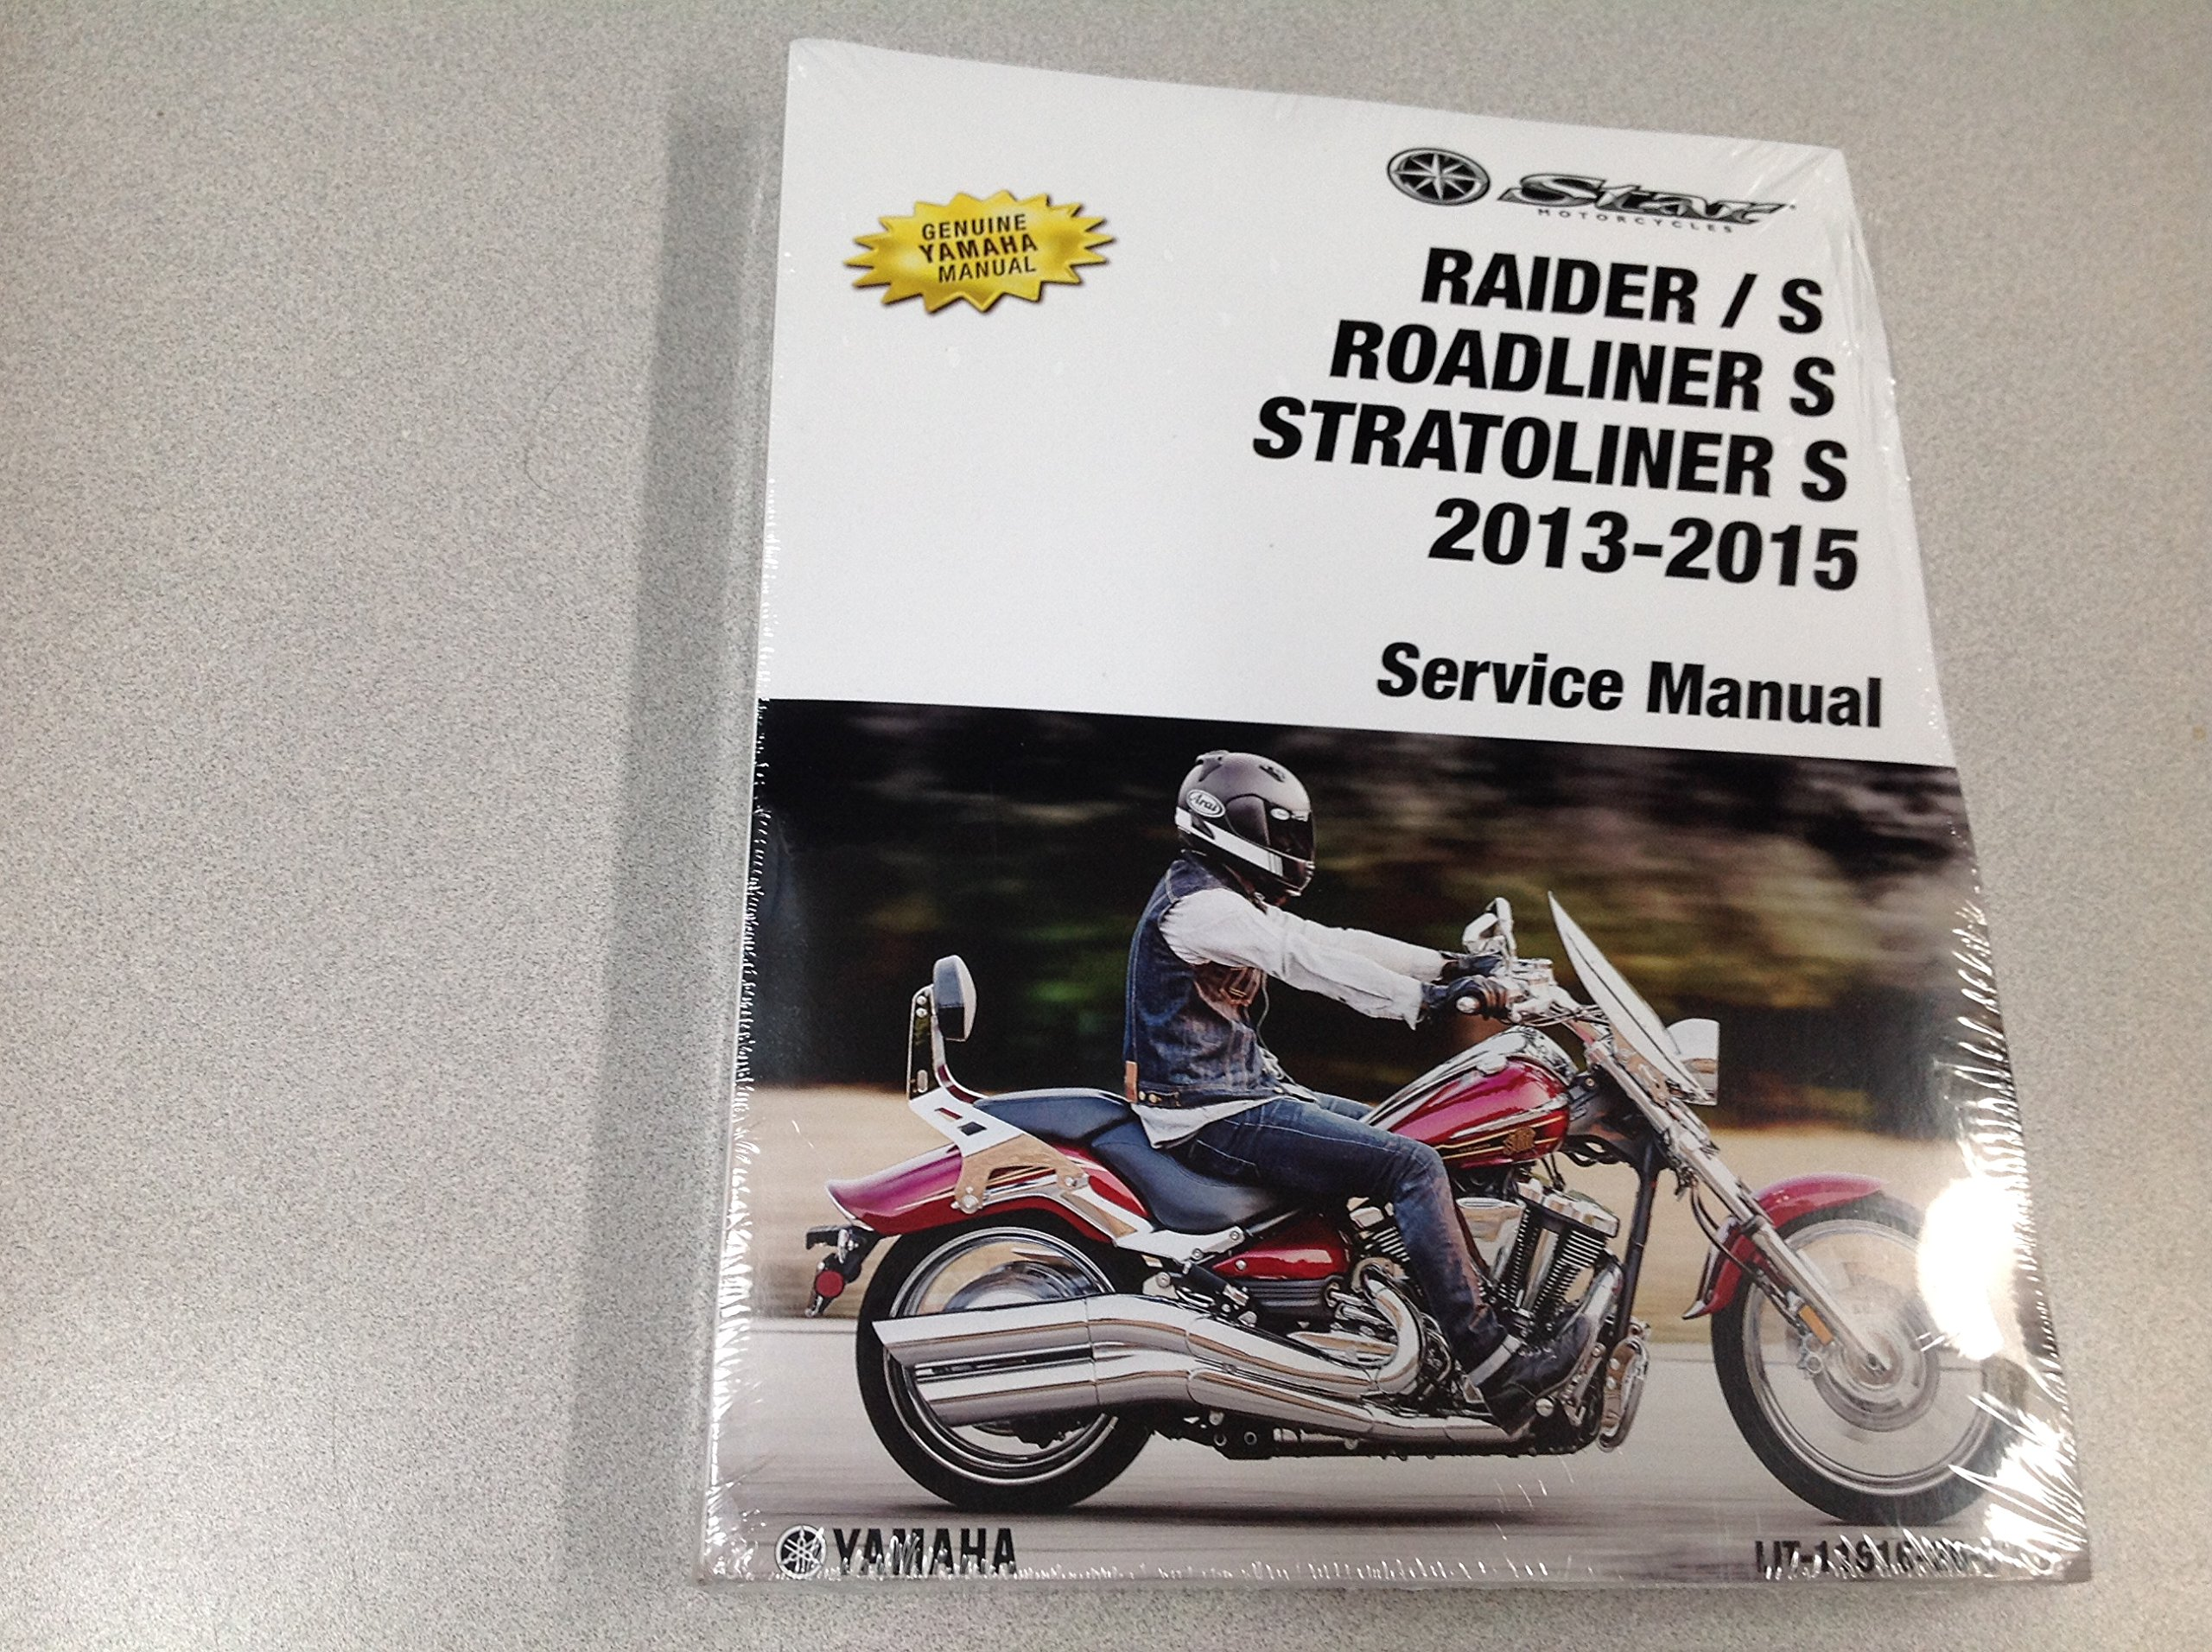 2013 2014 2015 Yamaha Raider Models Stratoliner Roadliner Models Service  Shop Manual: YAMAHA: Amazon.com: Books